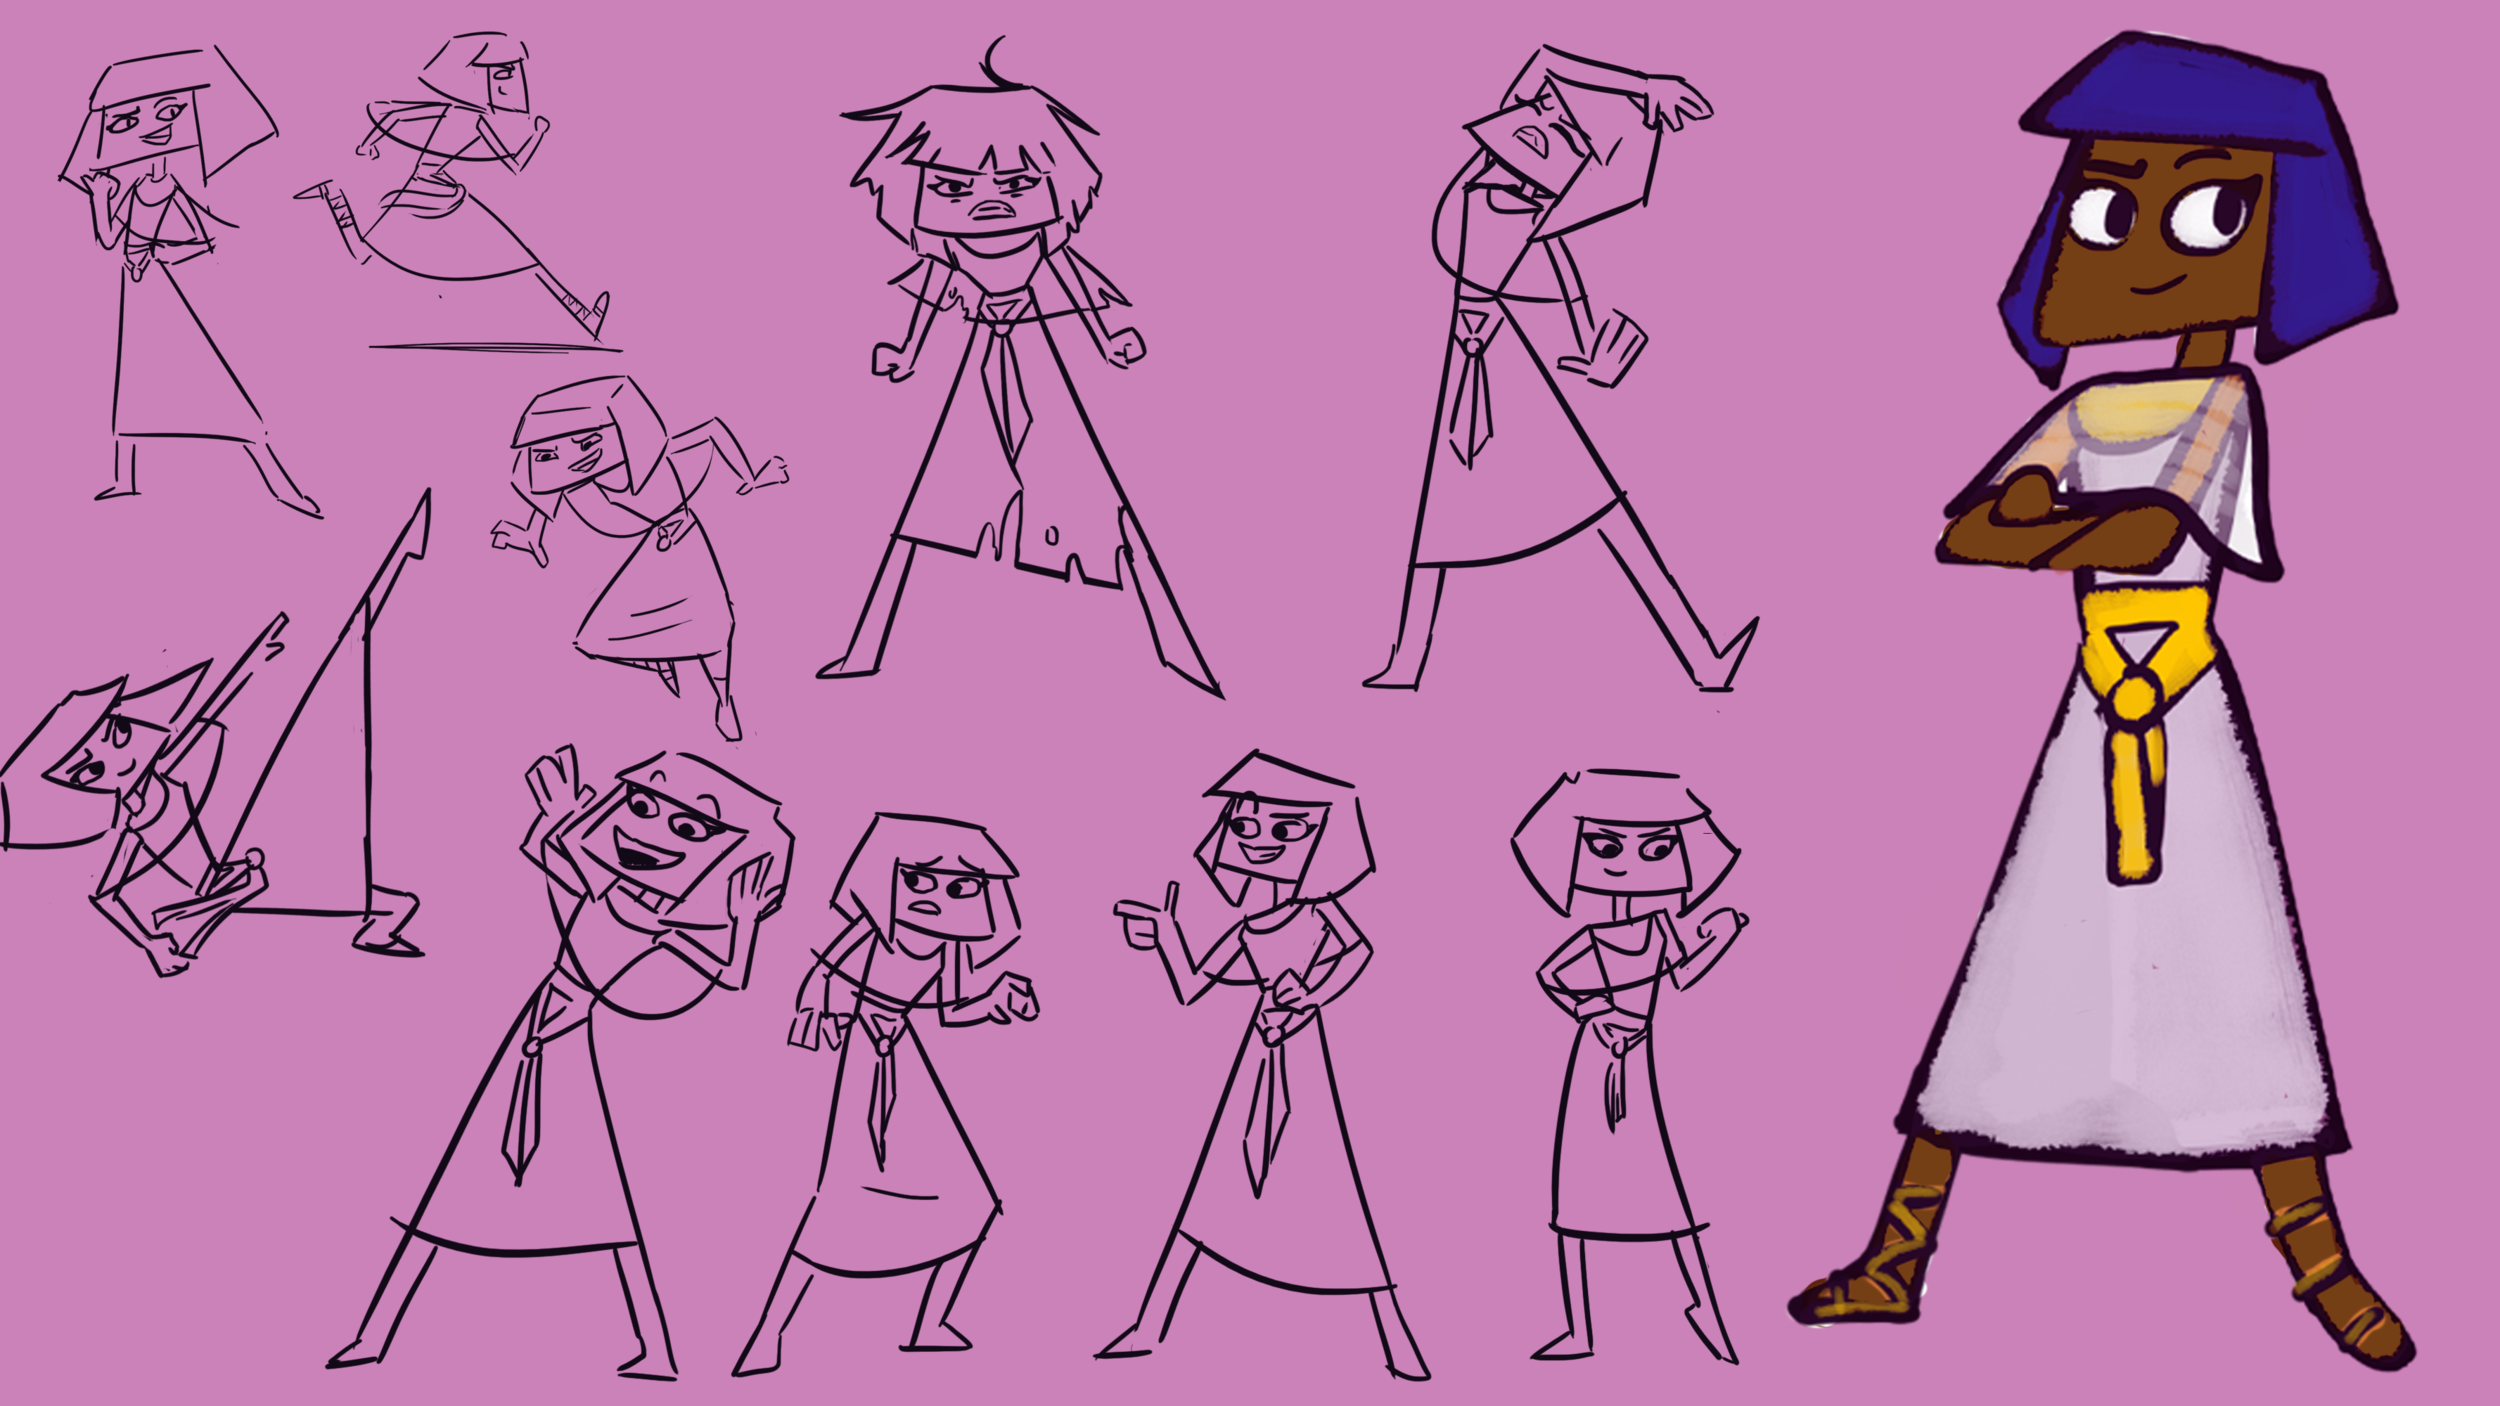 Tate Character Ref.